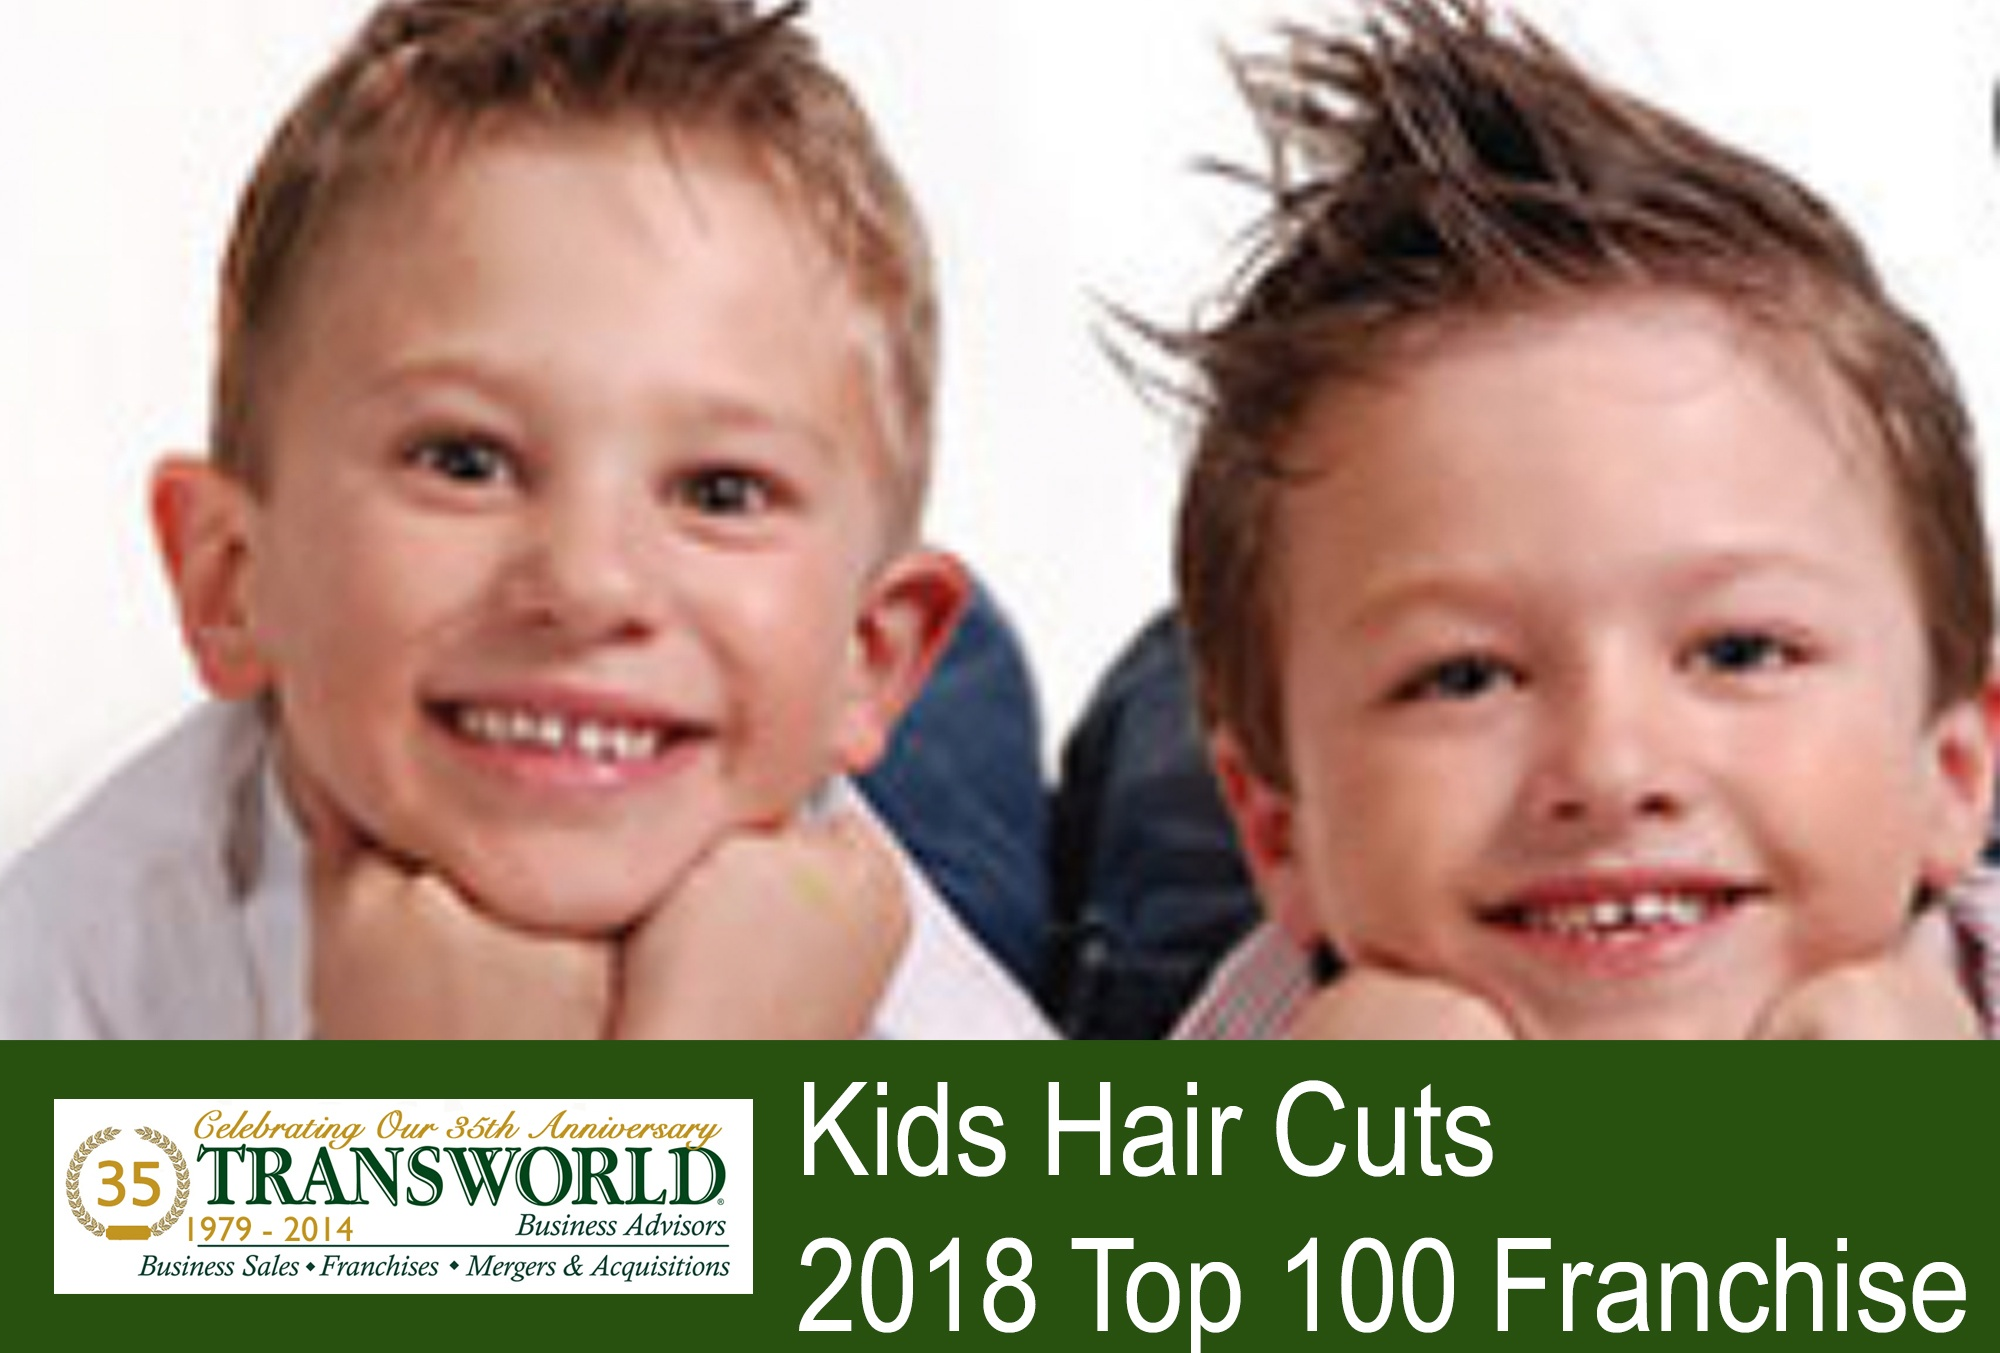 Kid's Haircut and Beauty Franchise in South Charlotte